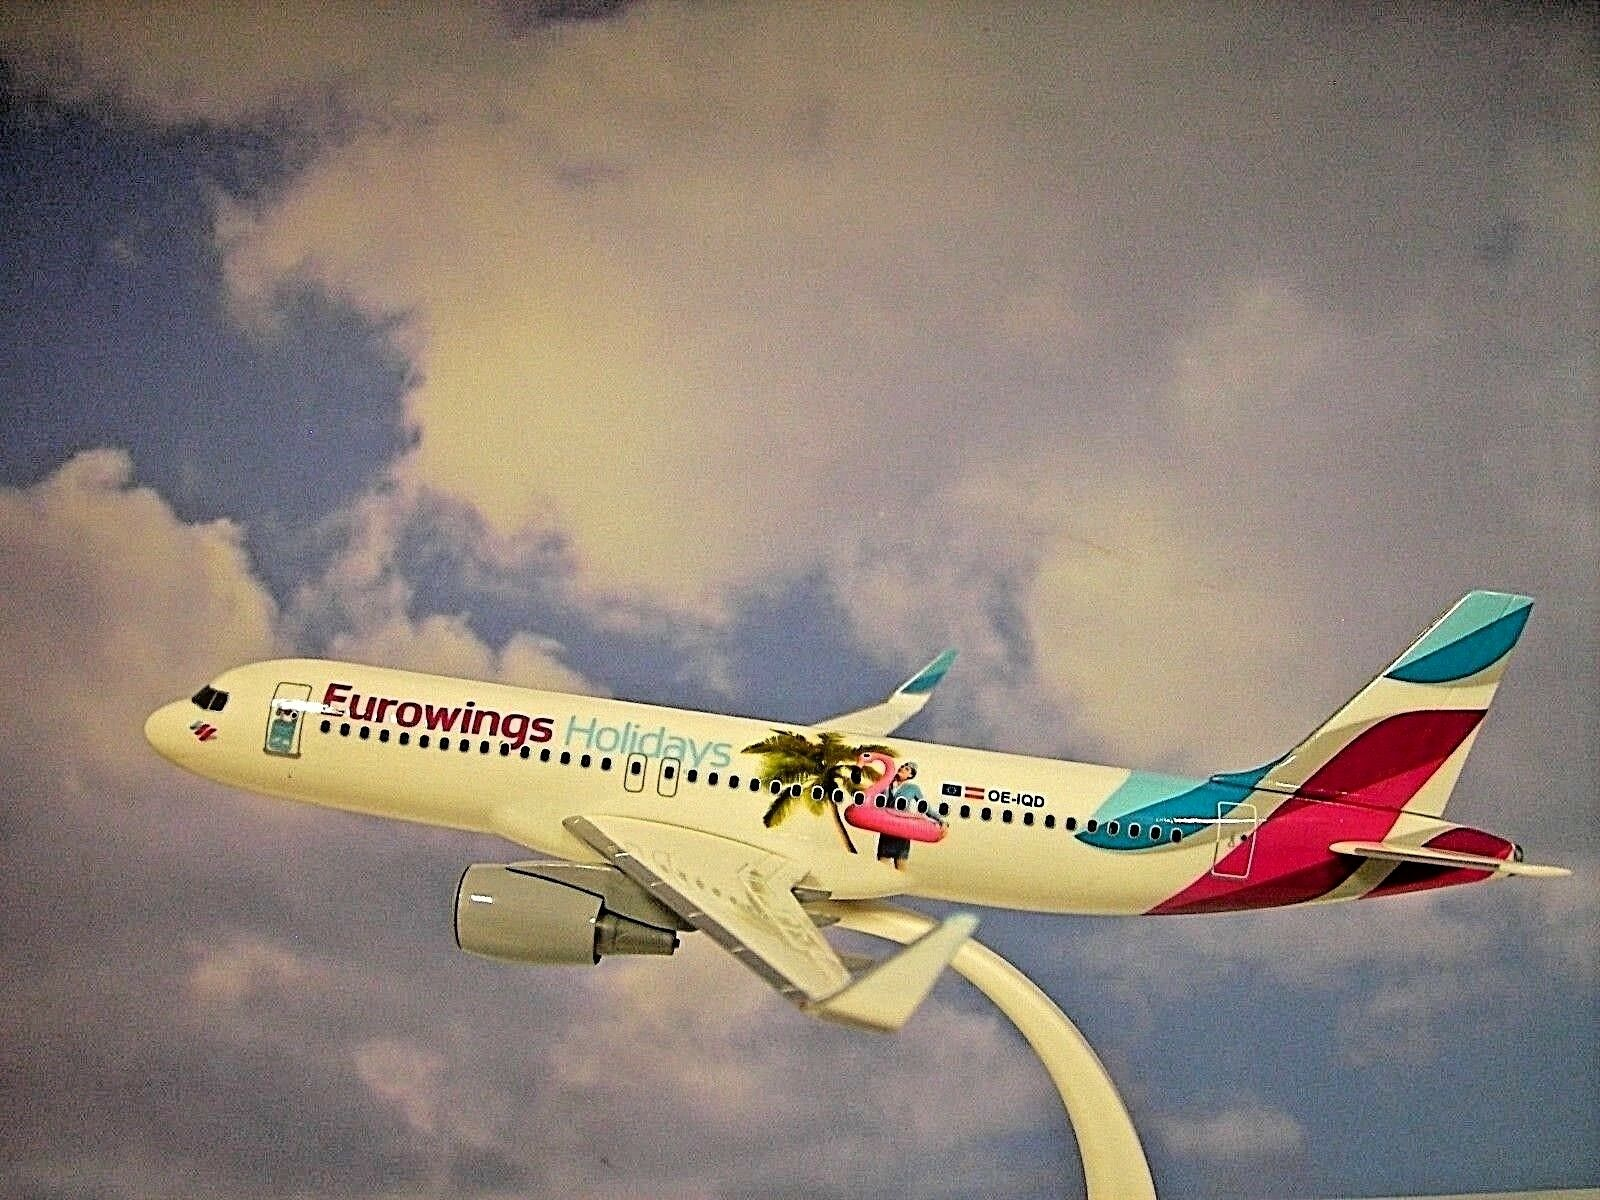 Herpa Wings 1 200 Snap Fit Airbus A320 Eurowings Holidays Holidays Holidays Oe-Iqd 611893 21a325